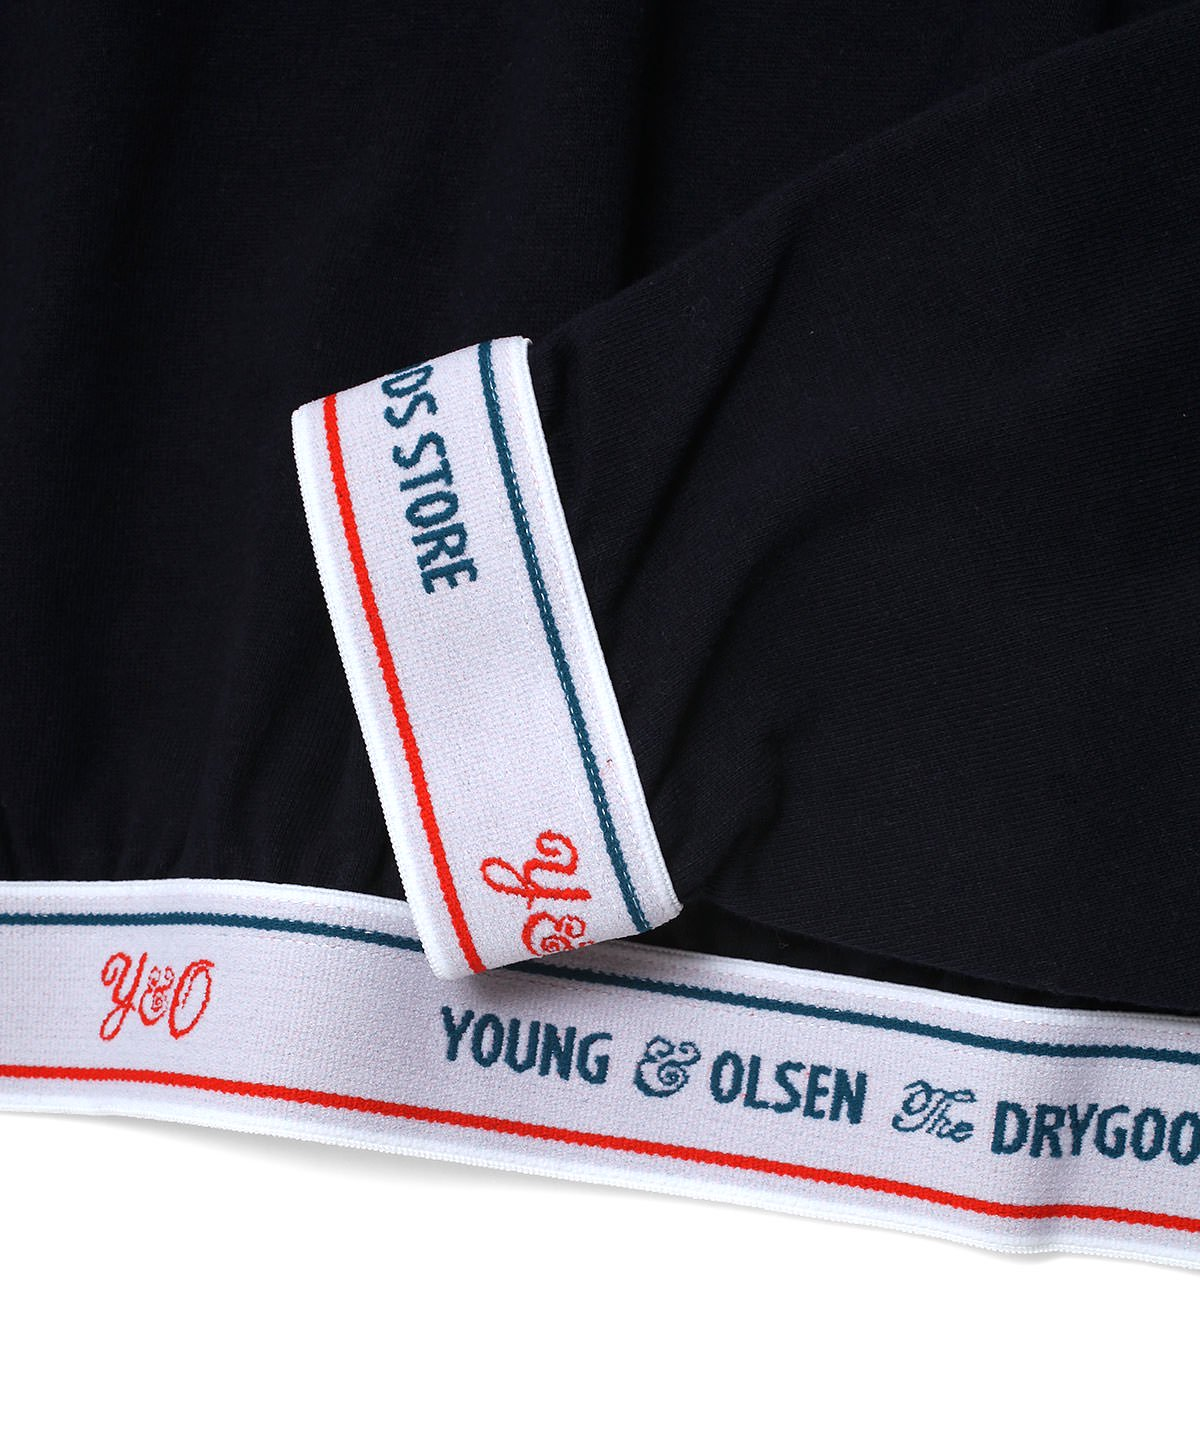 OLSEN'S TRAINING TOP LS